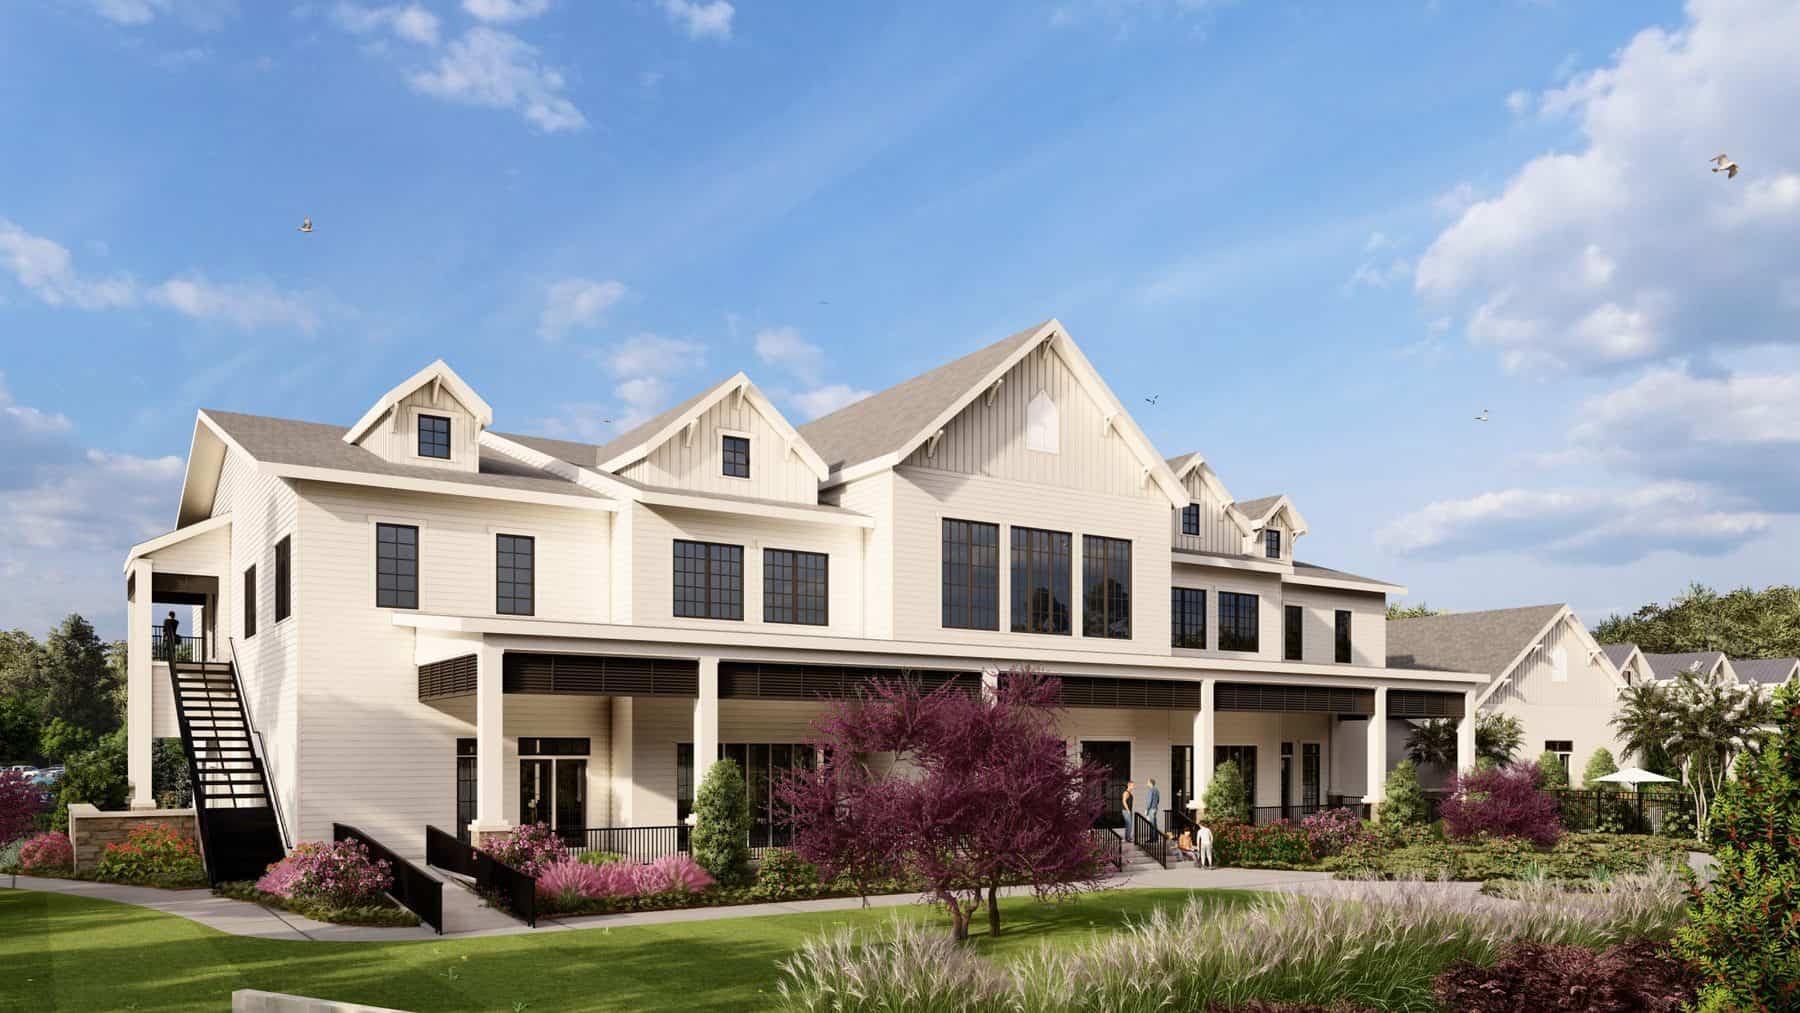 cresswind georgia at twin lakes clubhouse rendering rear view